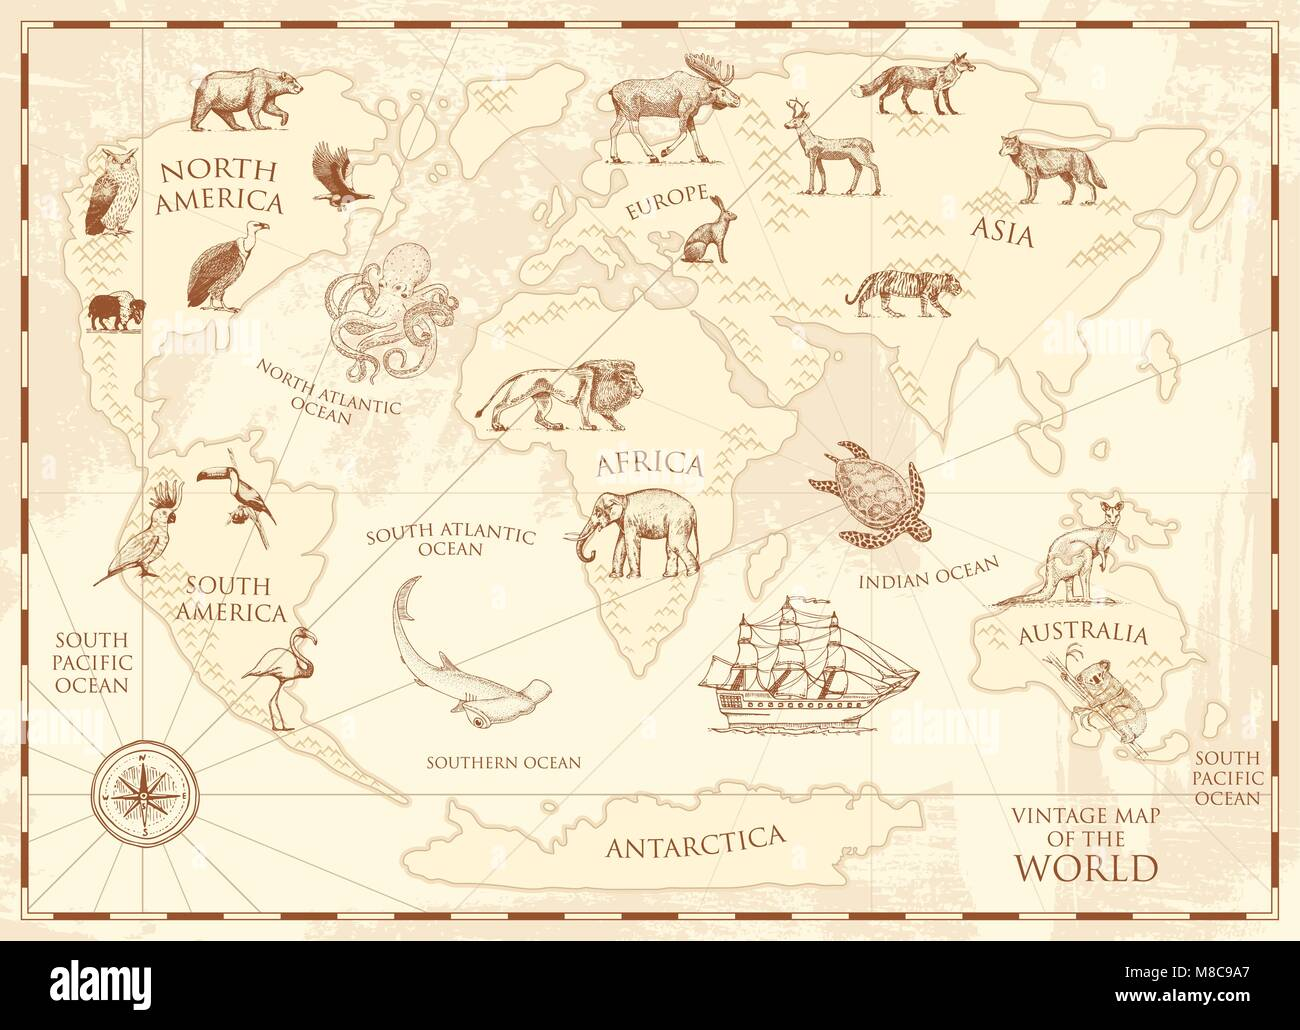 Vintage world map with wild animals and mountains. Sea creatures in the ocean. Old retro parchment. wildlife on - Stock Image